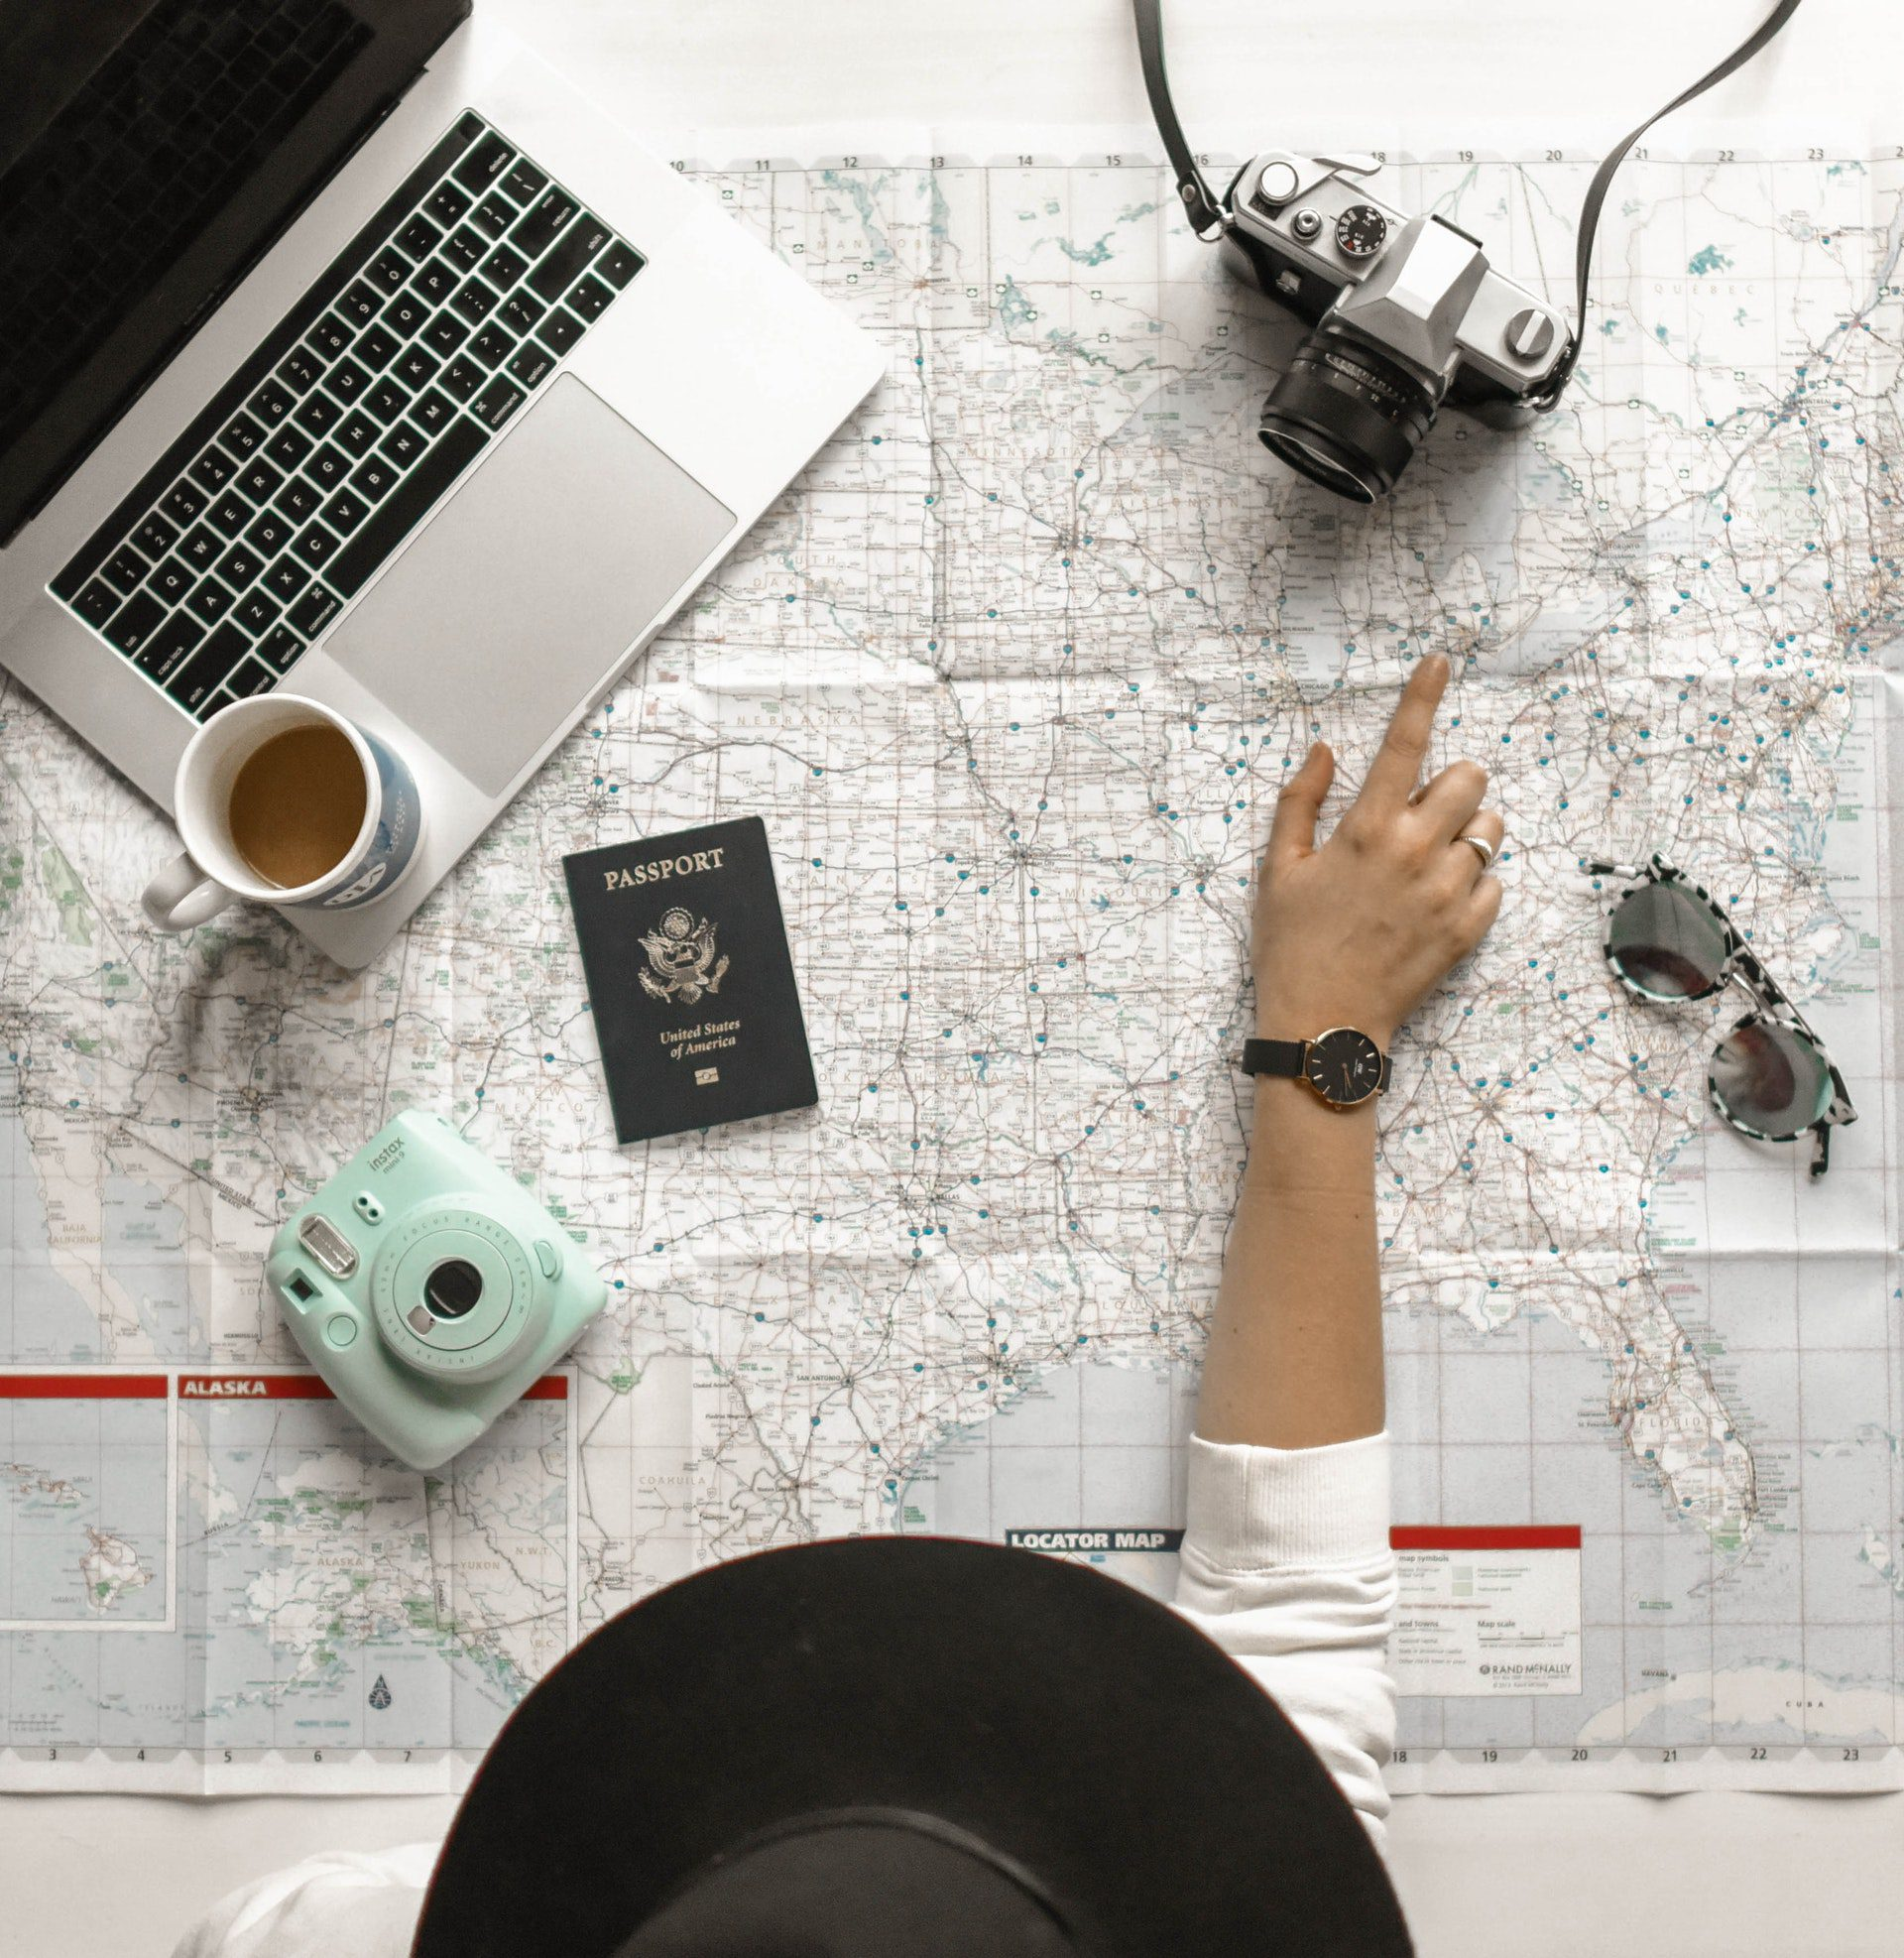 What Are The Technologies Used In Developing A Travel Portal Application